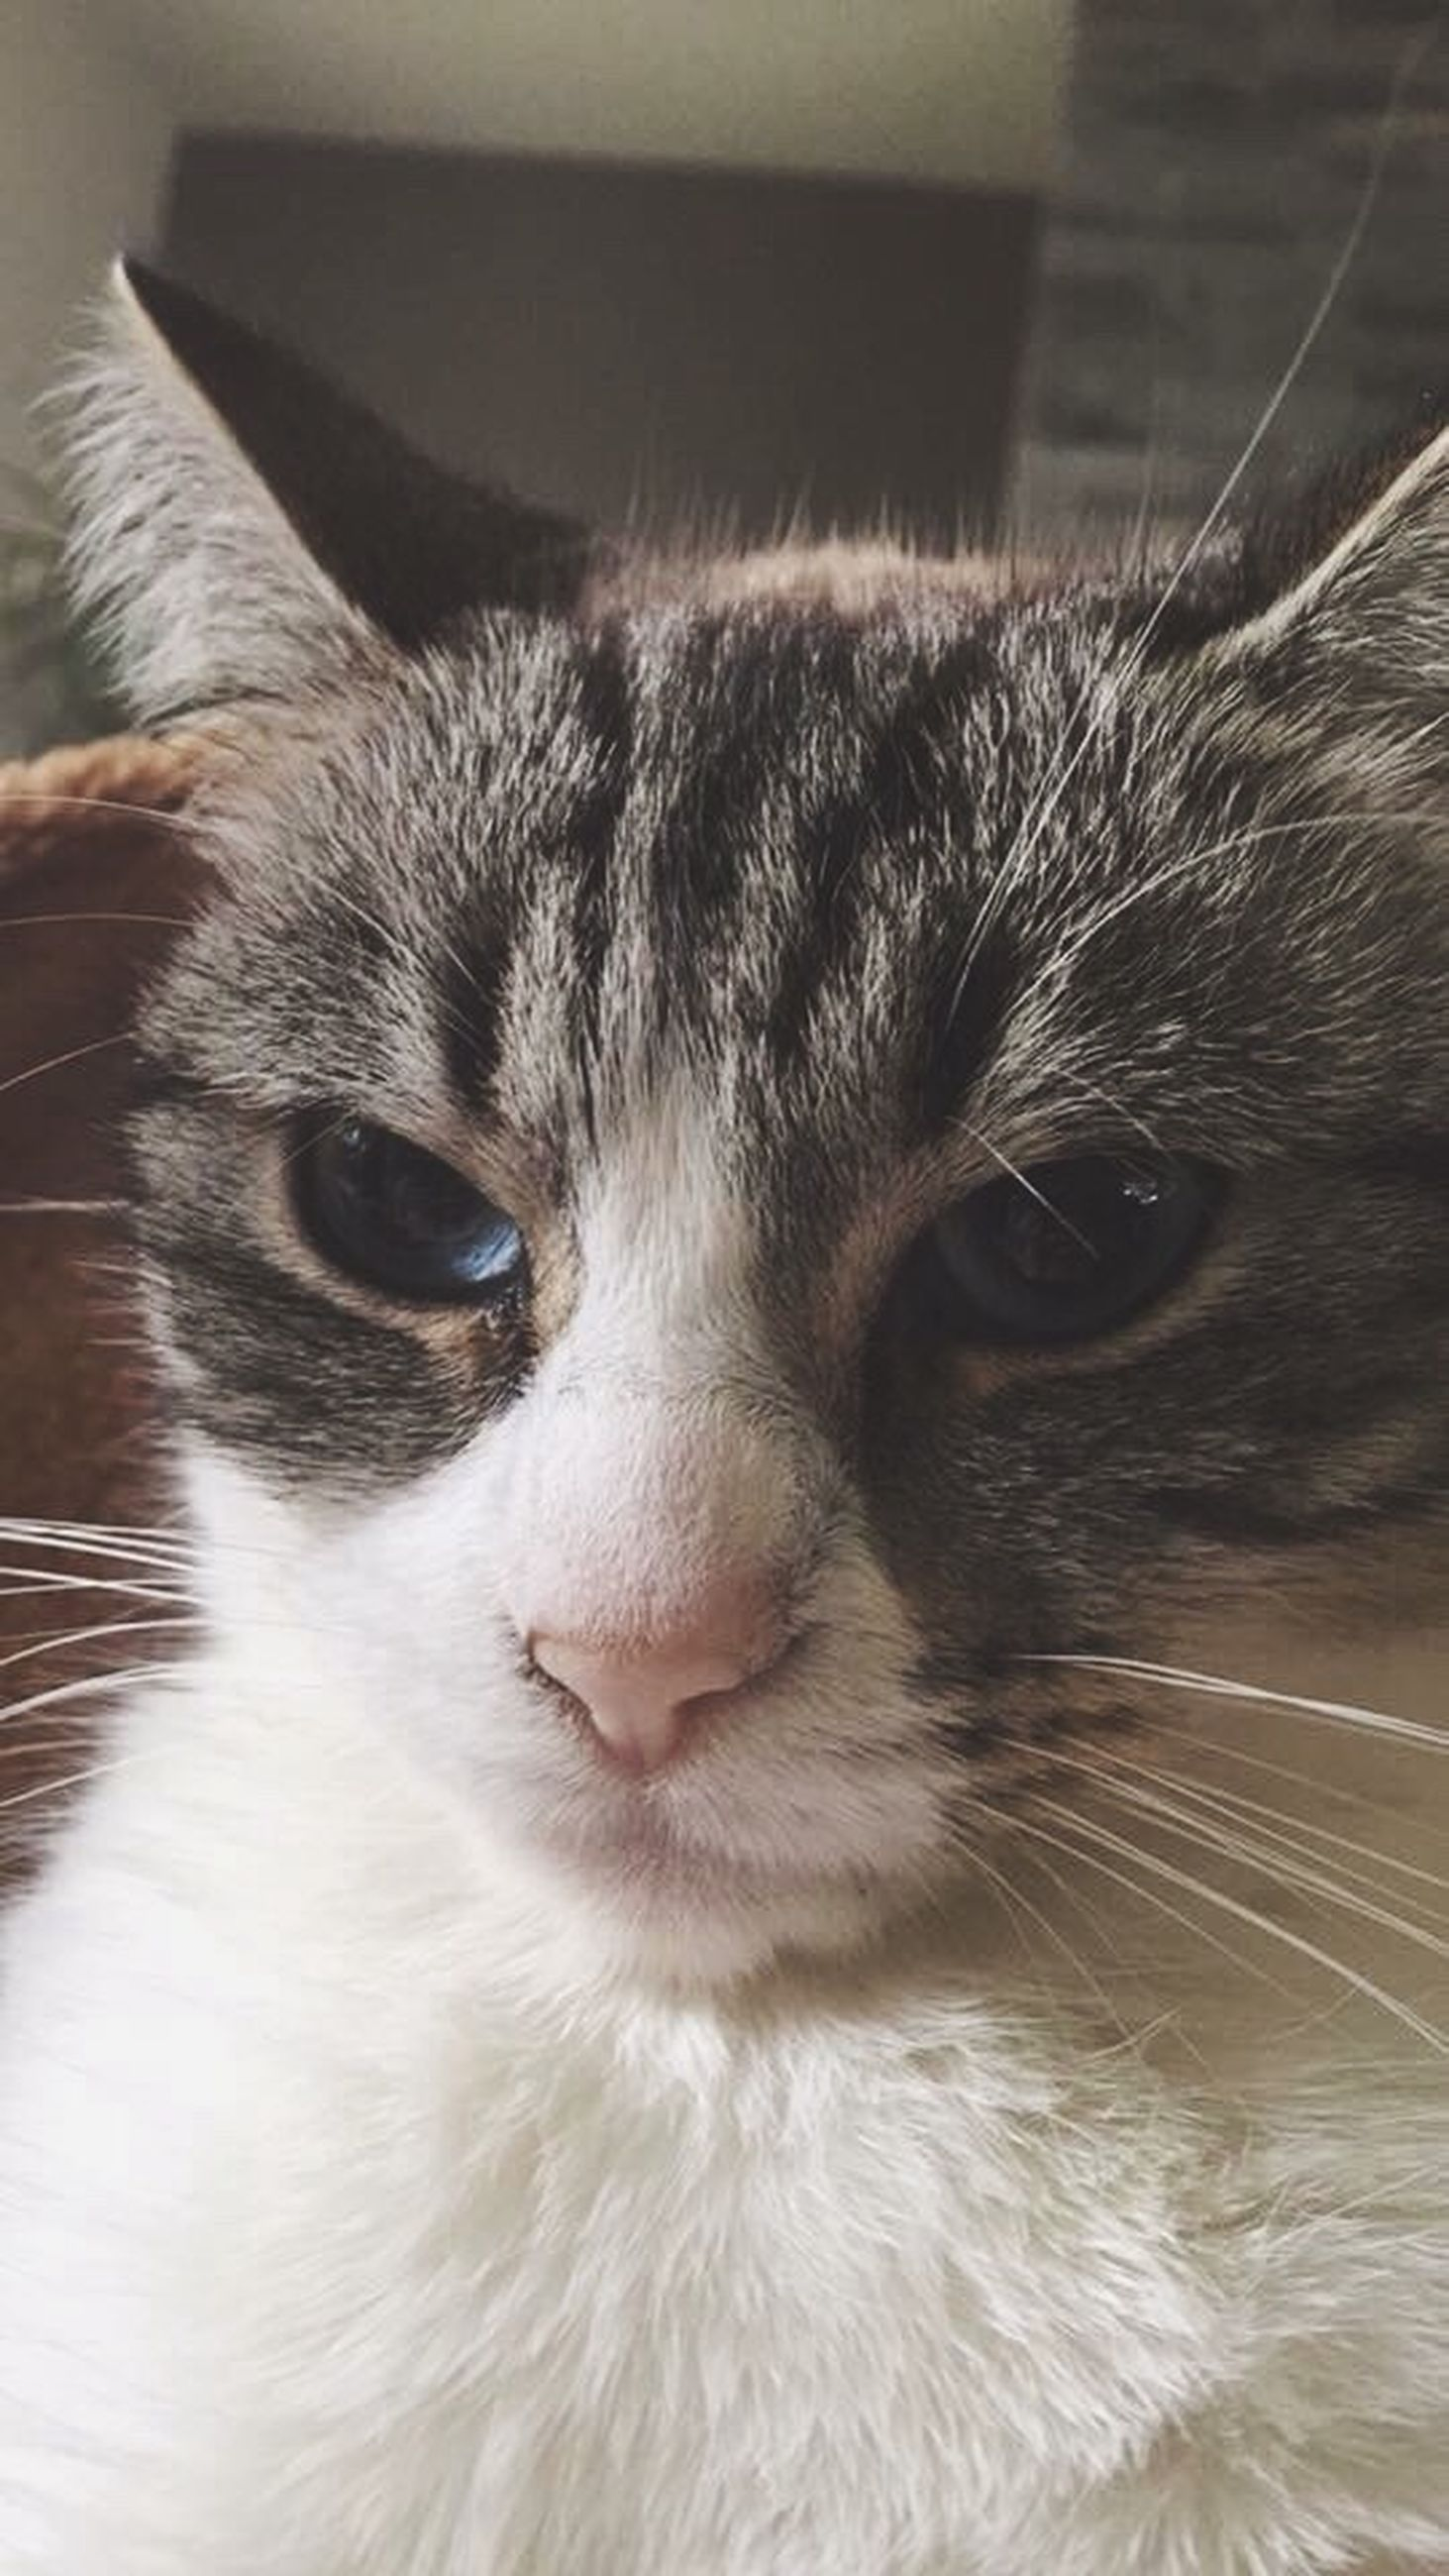 domestic animals, pets, one animal, animal themes, domestic cat, mammal, cat, whisker, feline, animal head, close-up, animal body part, indoors, looking at camera, portrait, animal eye, focus on foreground, snout, part of